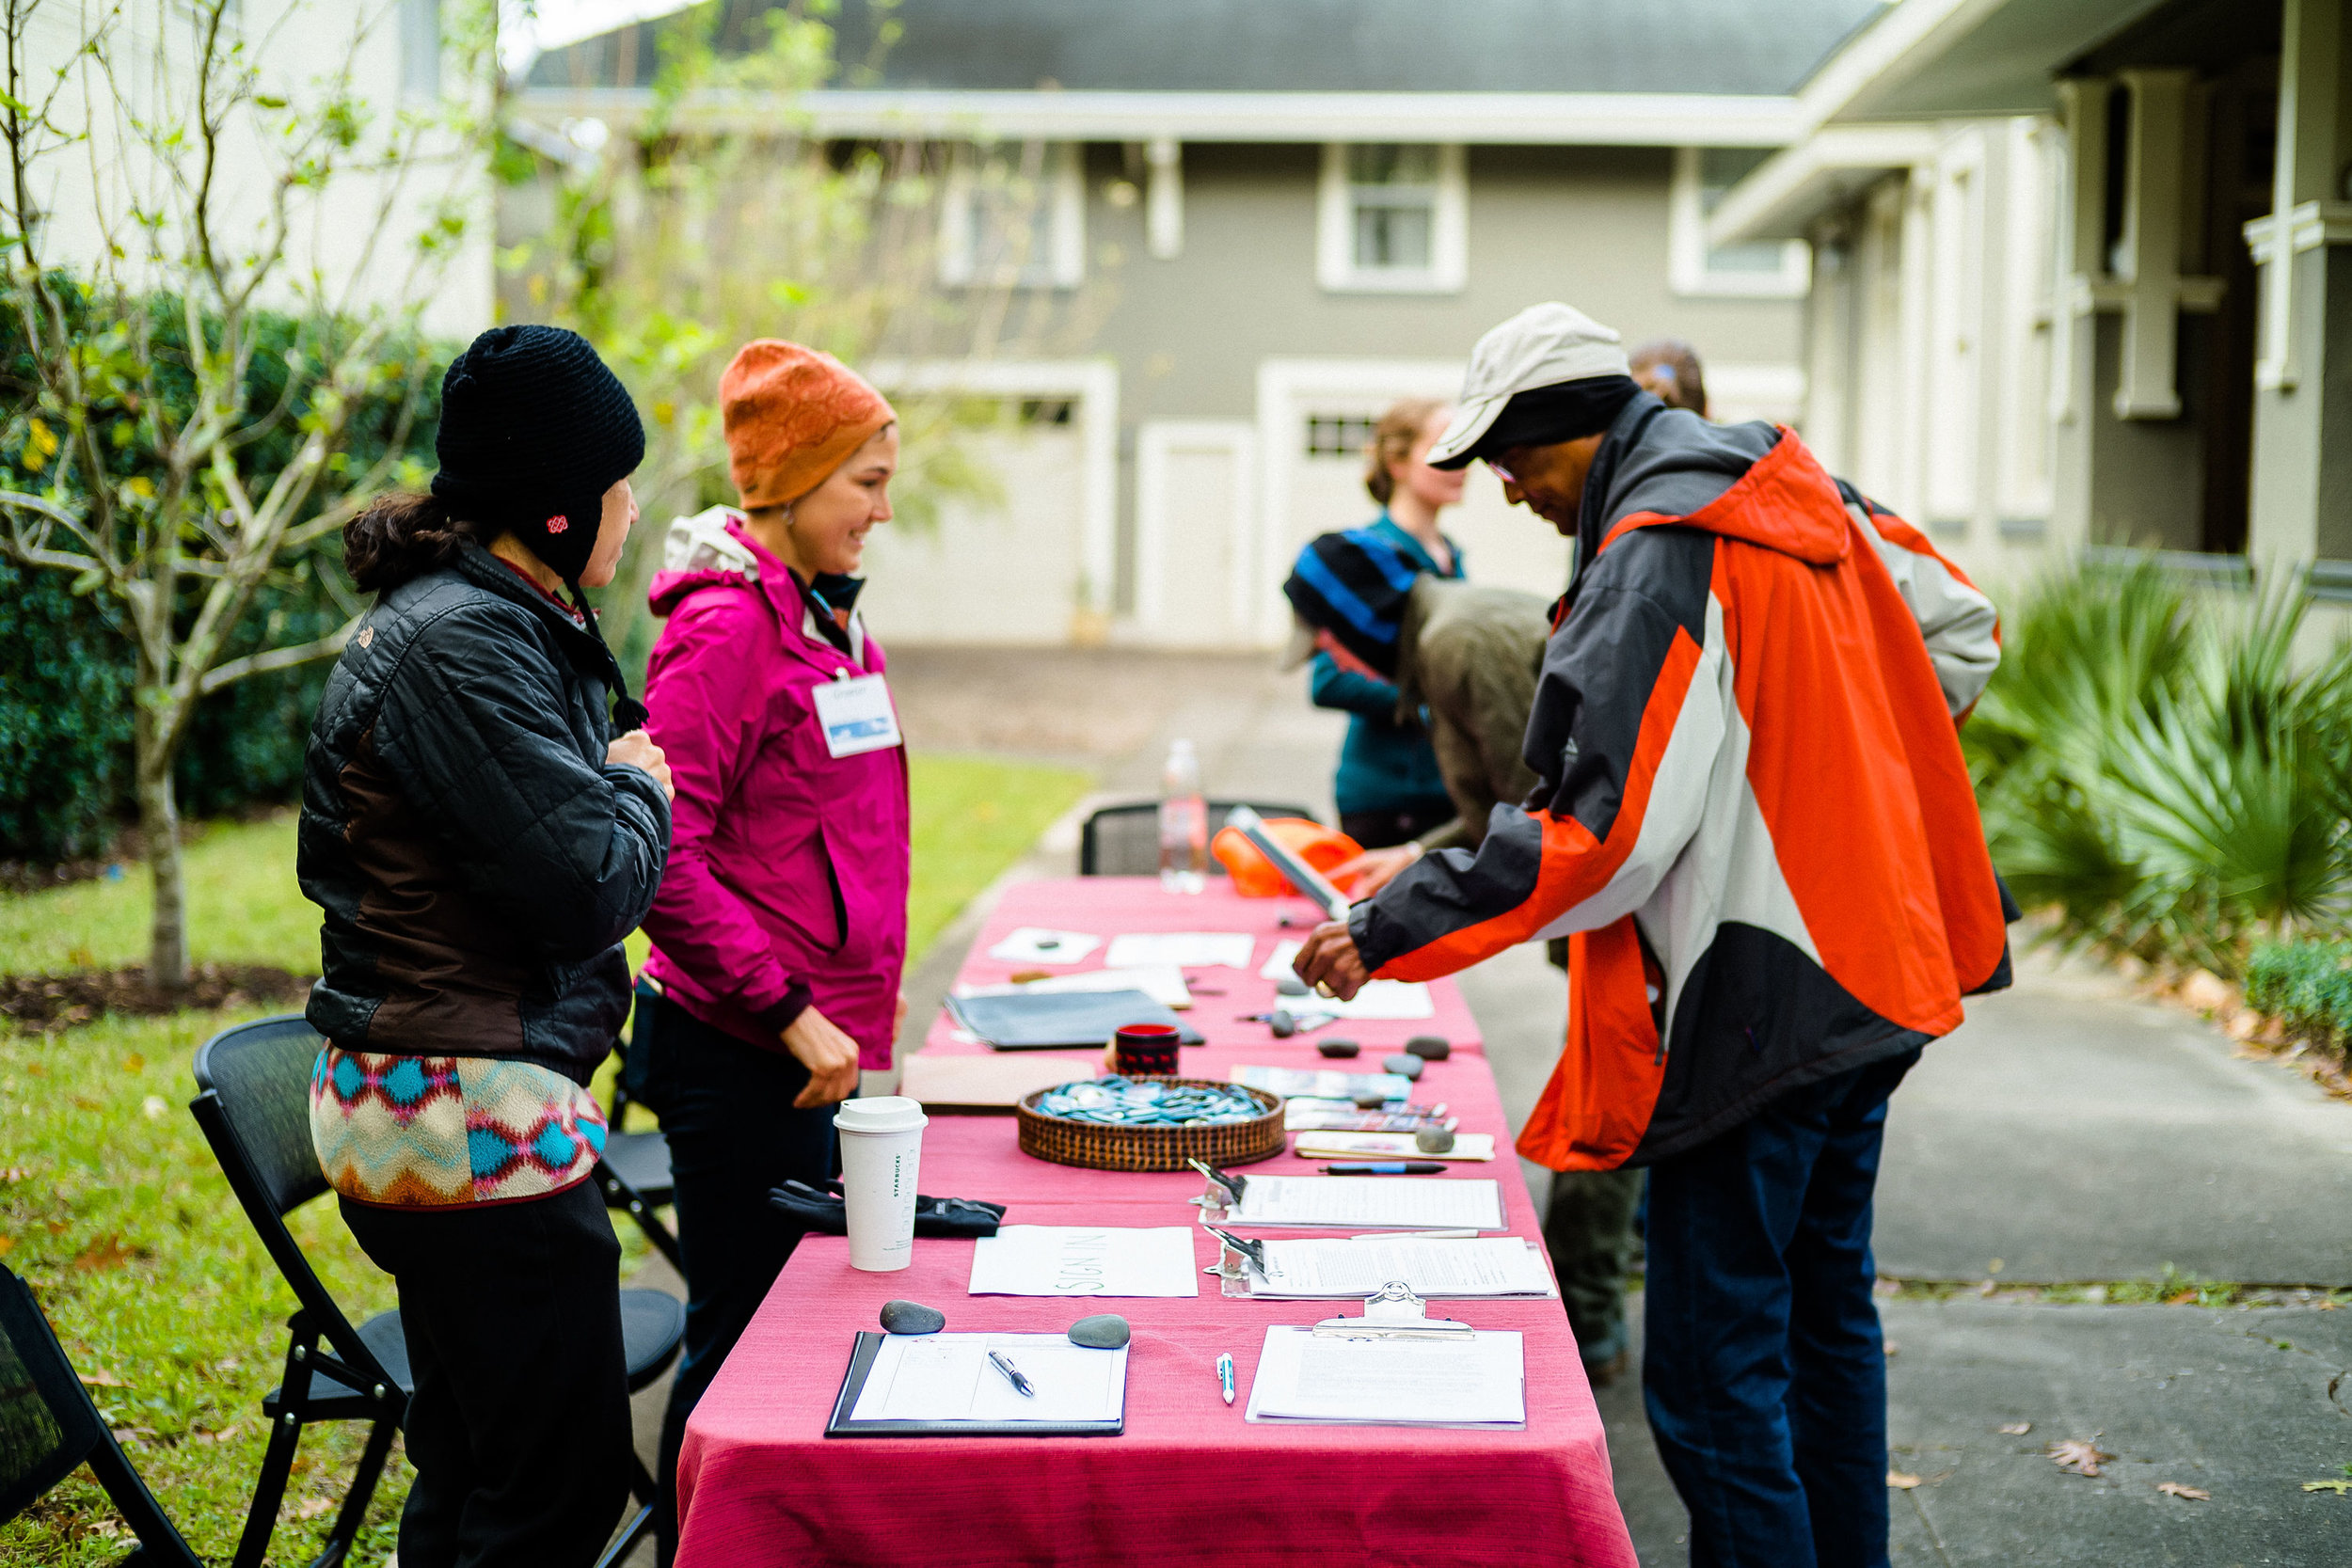 2018-Walk-to-feed-the-hungry-Houston-502.jpg